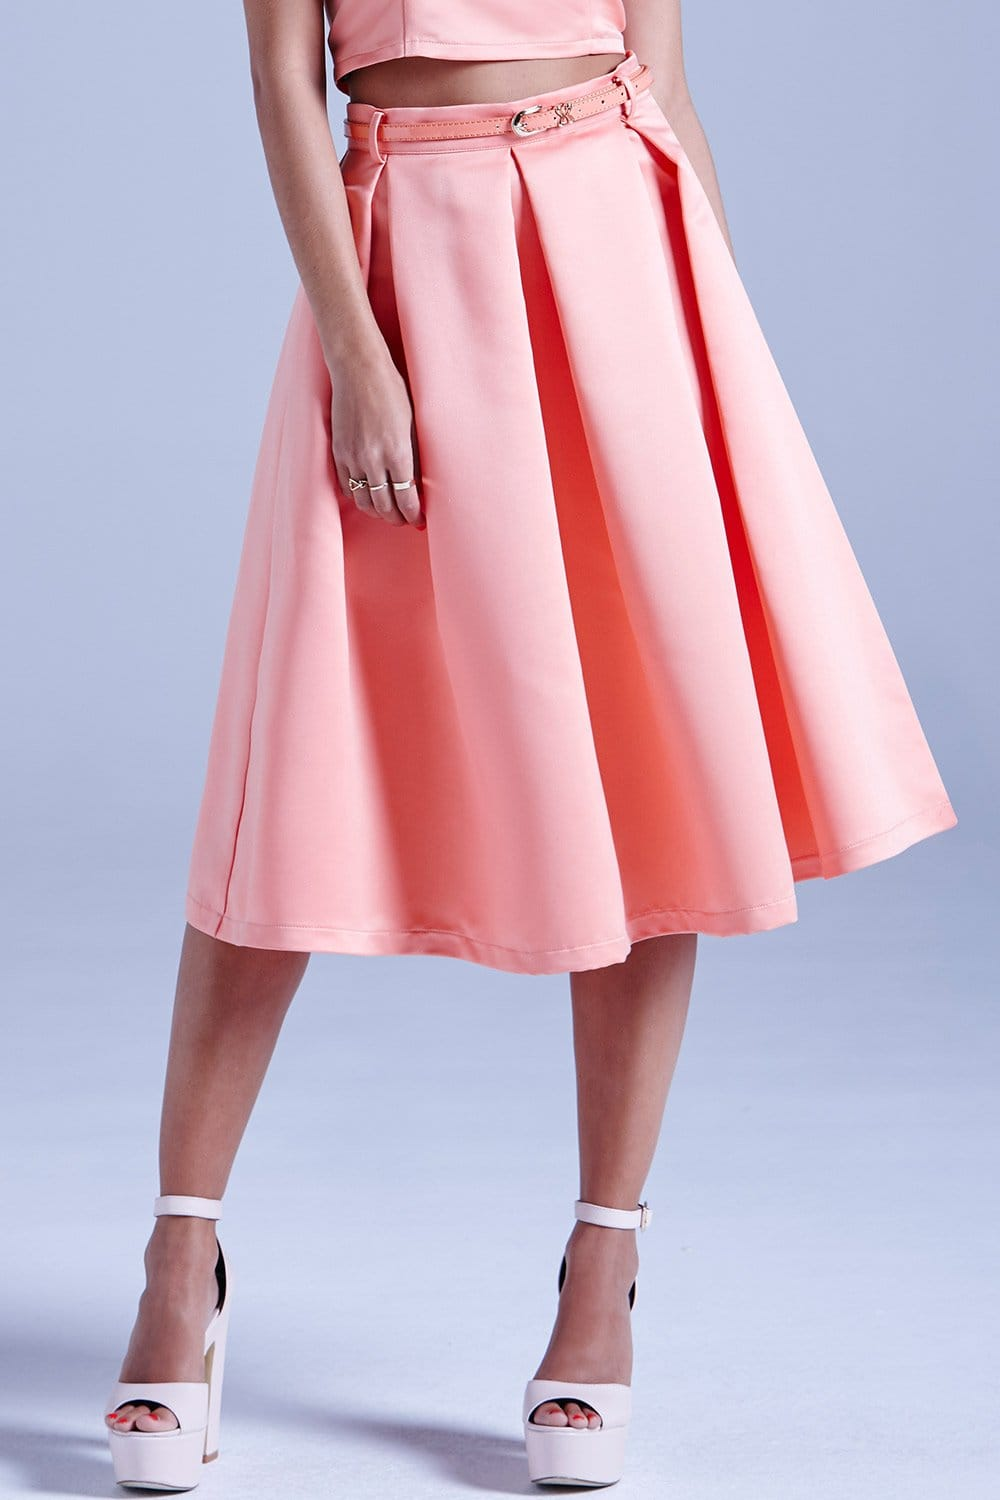 outlet on coral structured midi skirt with belt